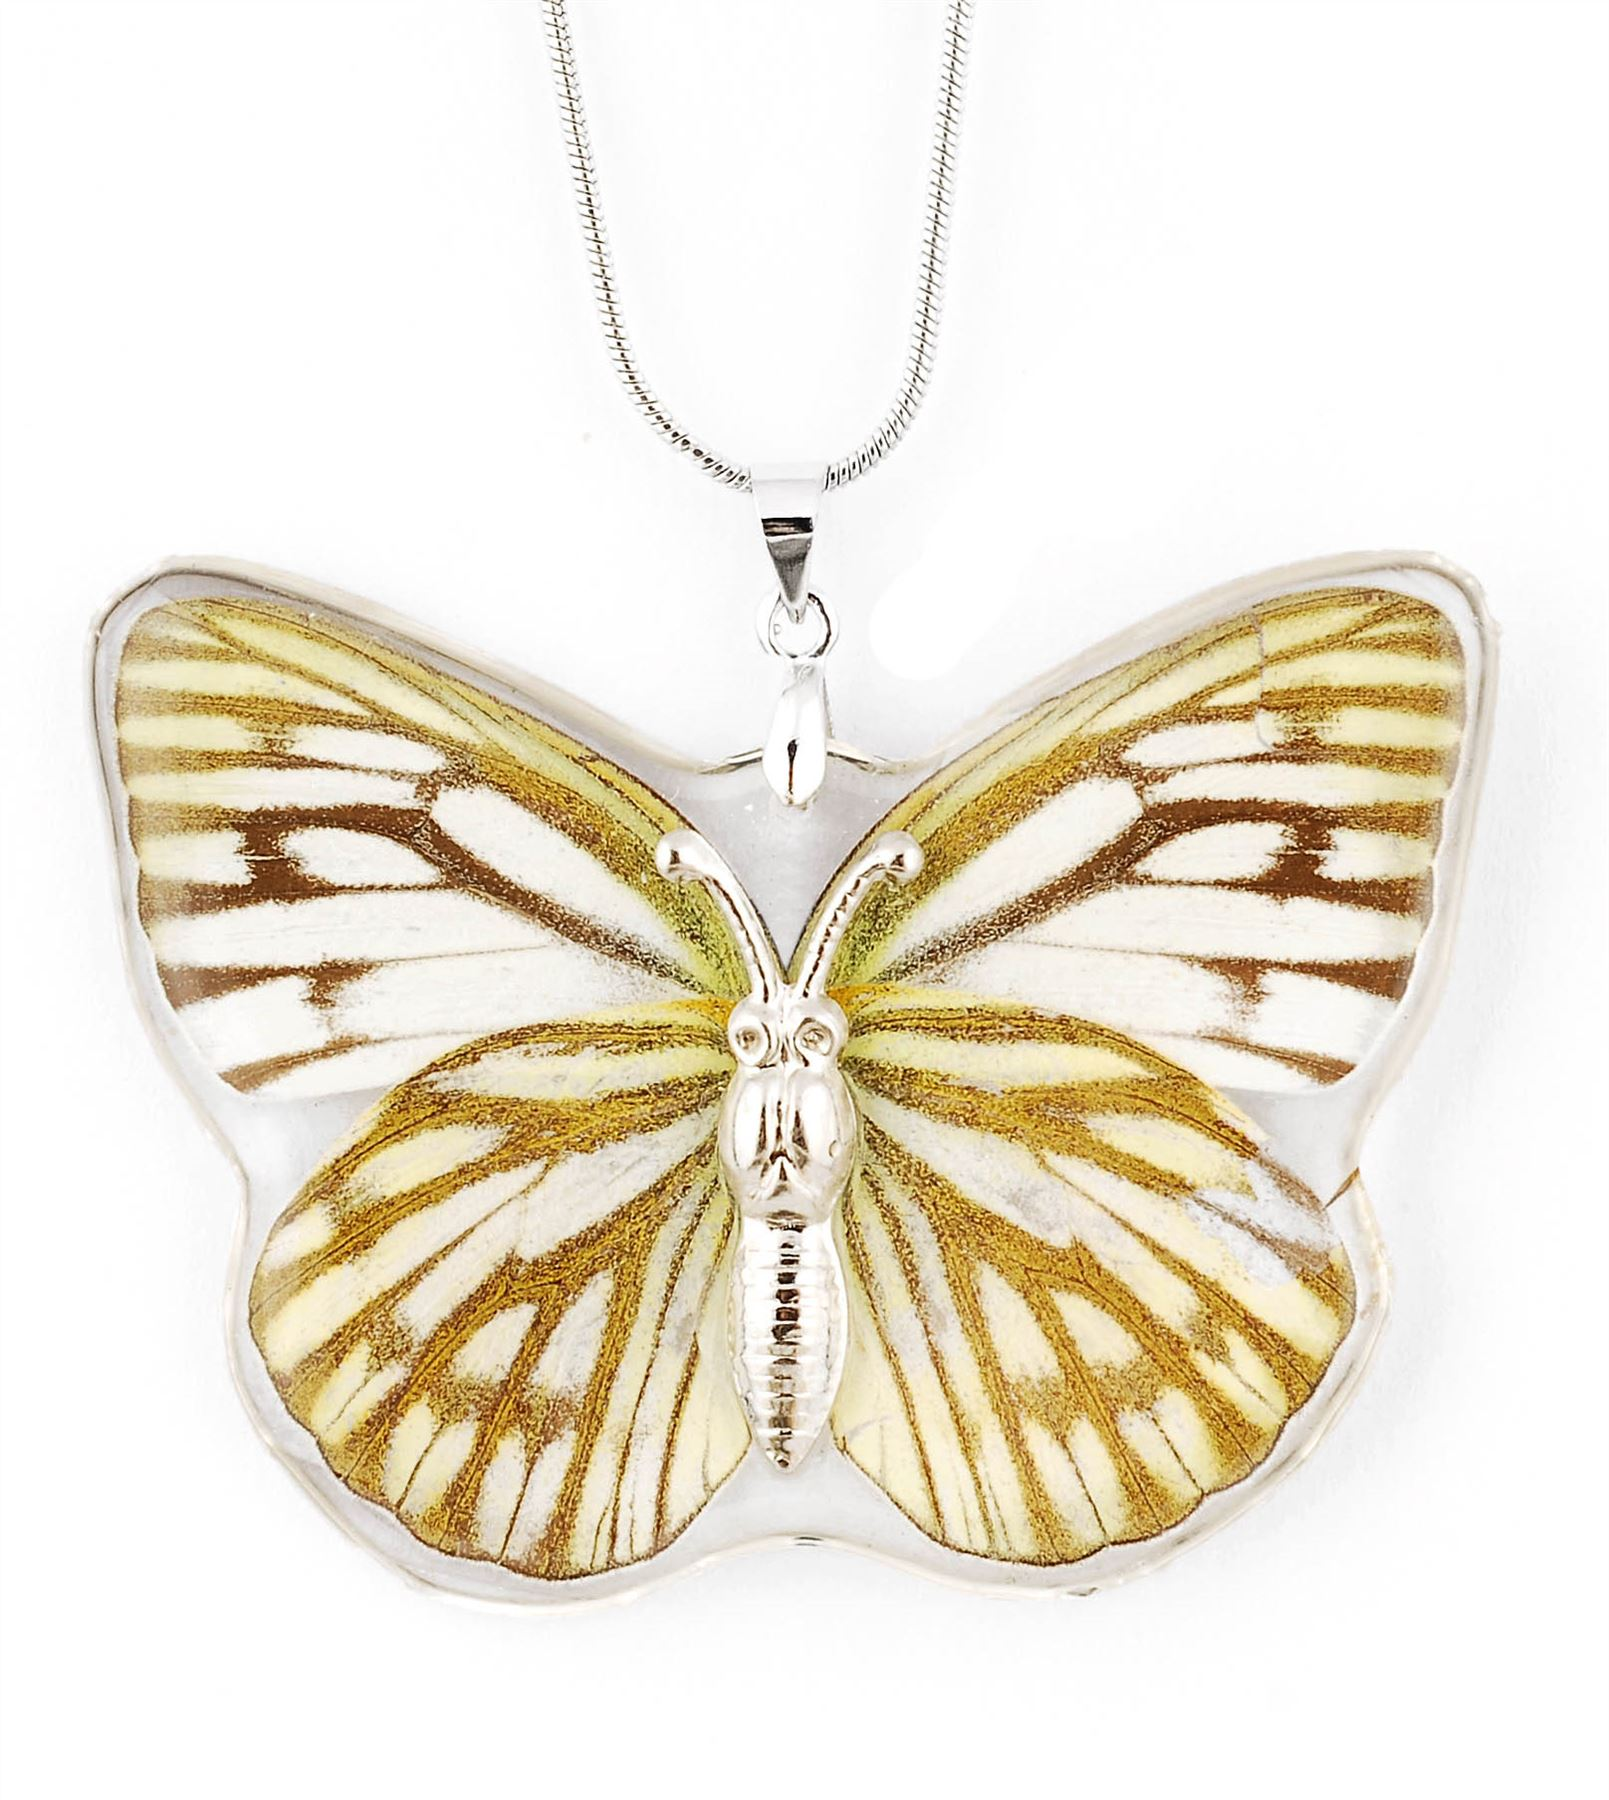 Real Insect Butterfly Wings Necklace Pendant Charm Jewelry ...